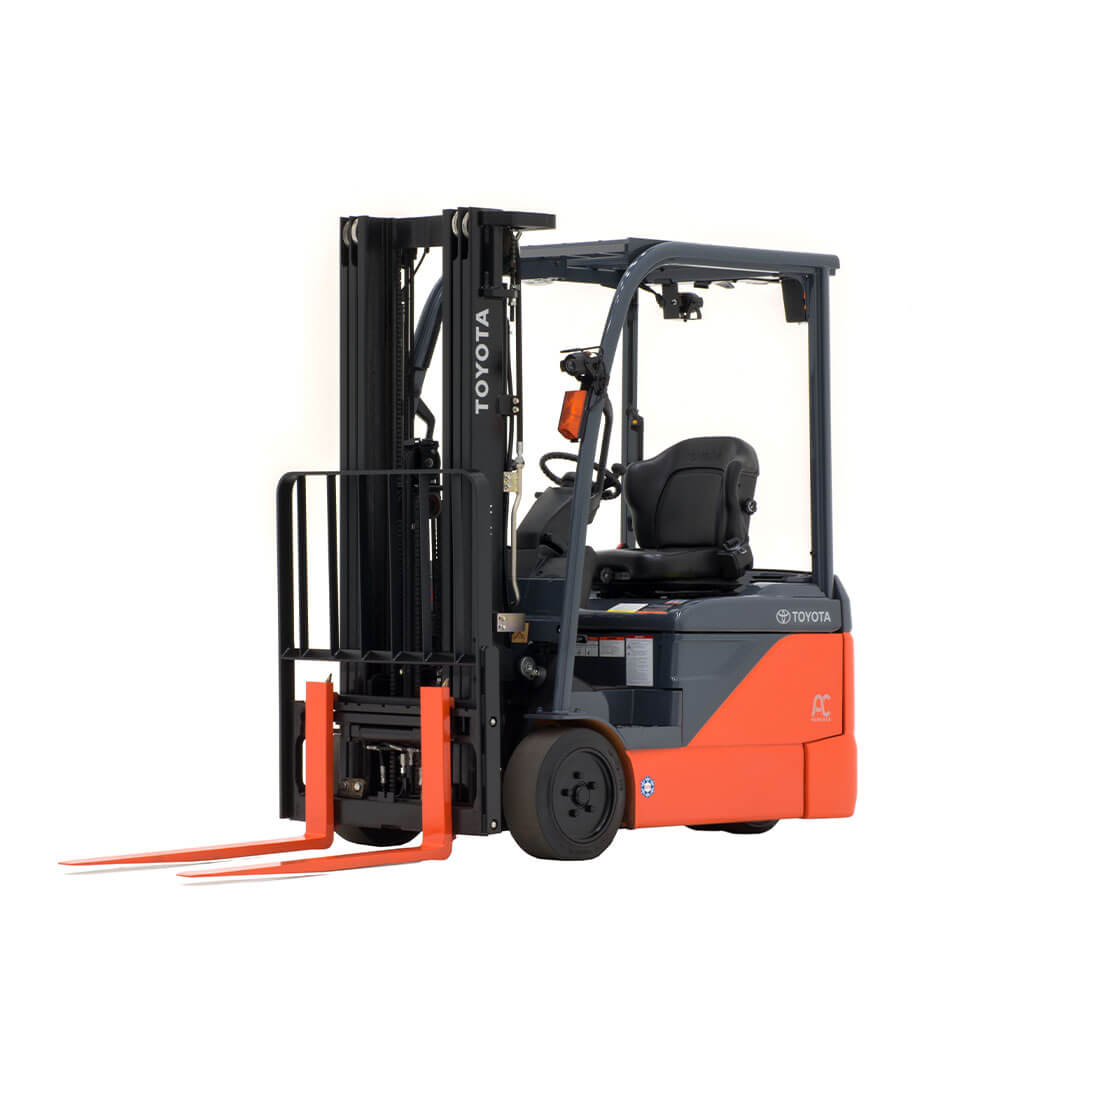 3-Wheel Electric Forklift side view 2